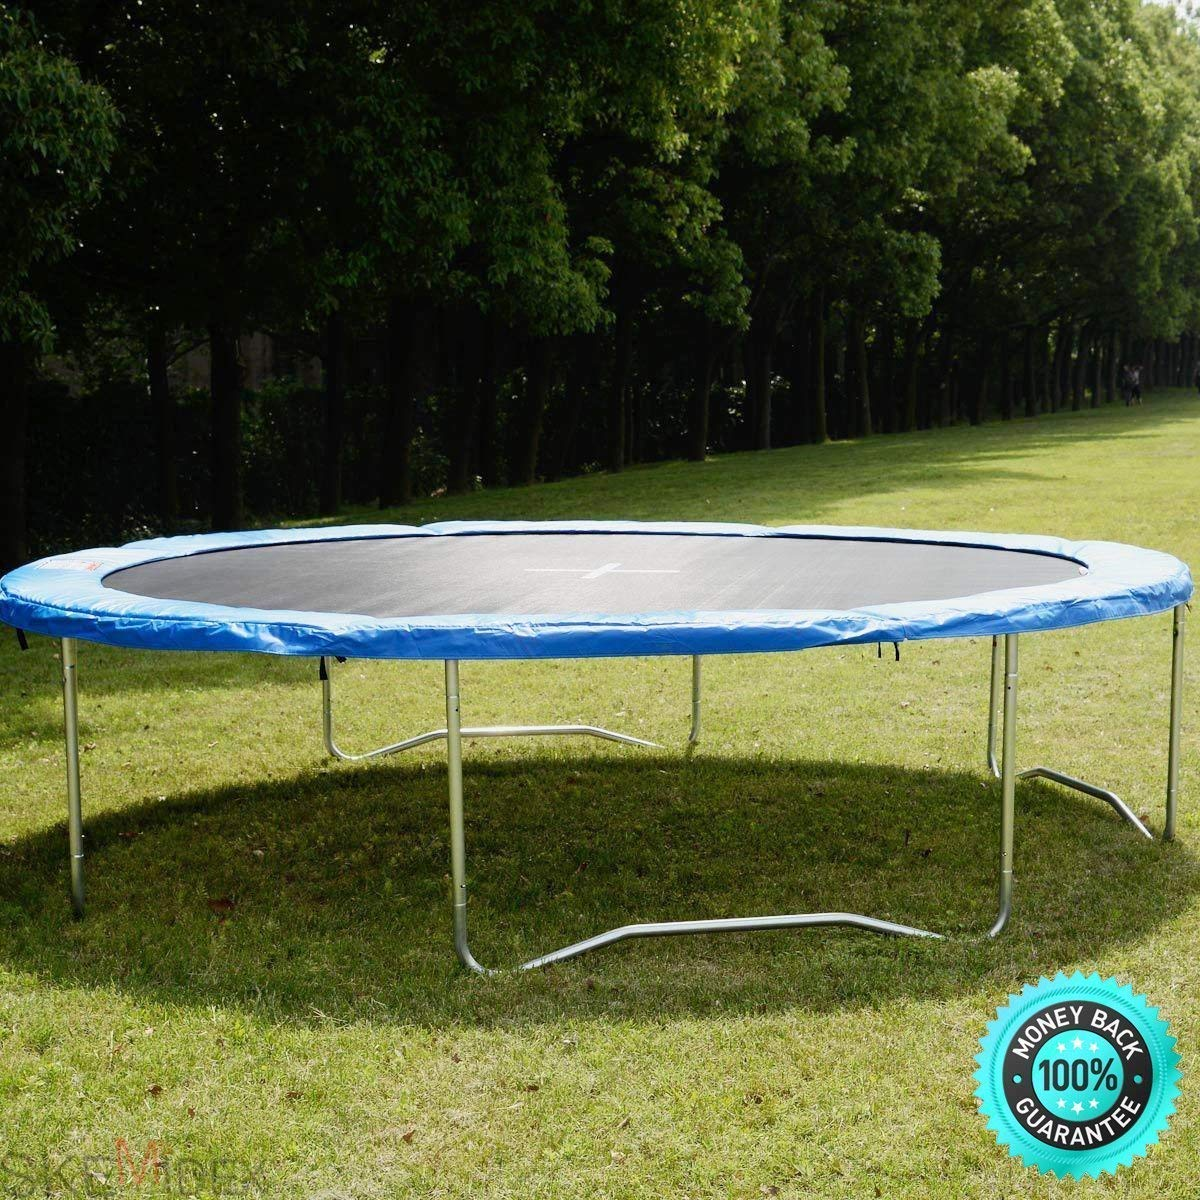 SKEMi- Best Exercise Trampoline Exercise Trampoline Walmart and Exercise Trampoline Weight Limit and Safety Round Frame Blue Pad Spring Pad Replacement Cover for 10FT Trampoline New Item Ways